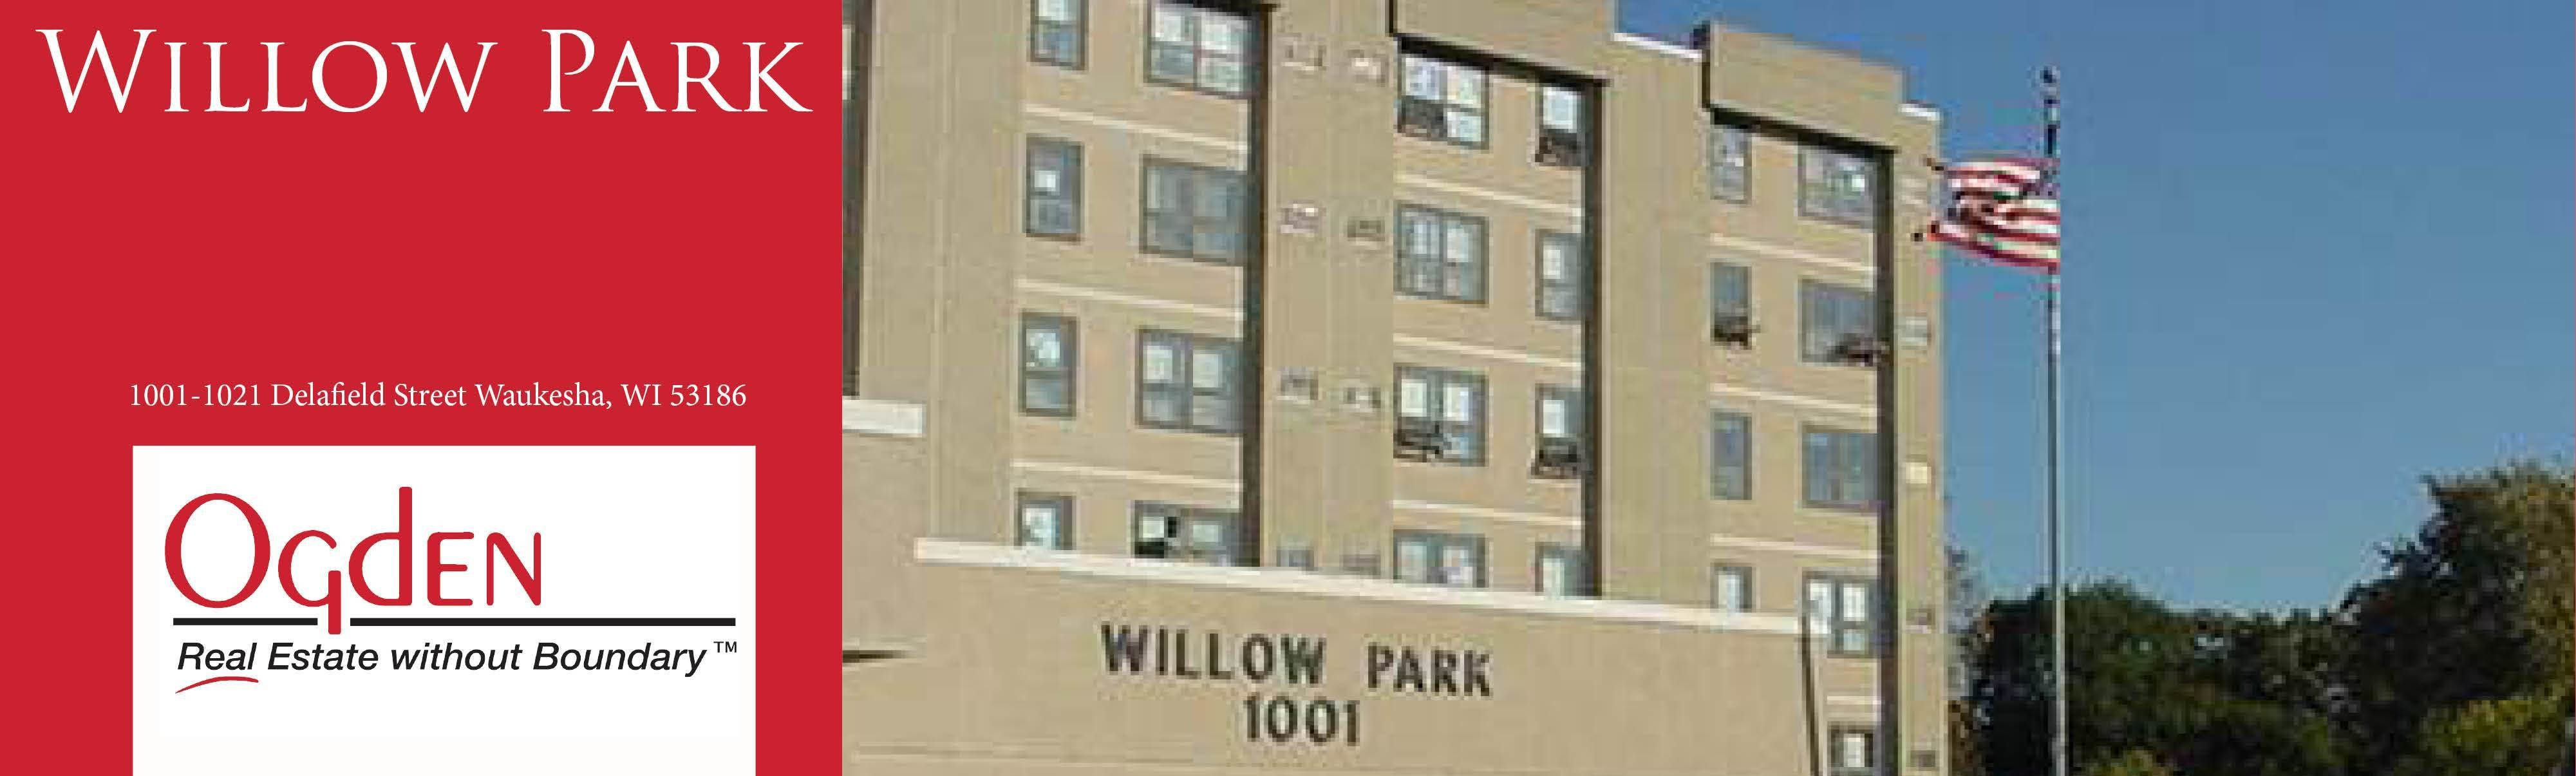 Best Willow Park Apartments Apartments In Waukesha Wi With Pictures